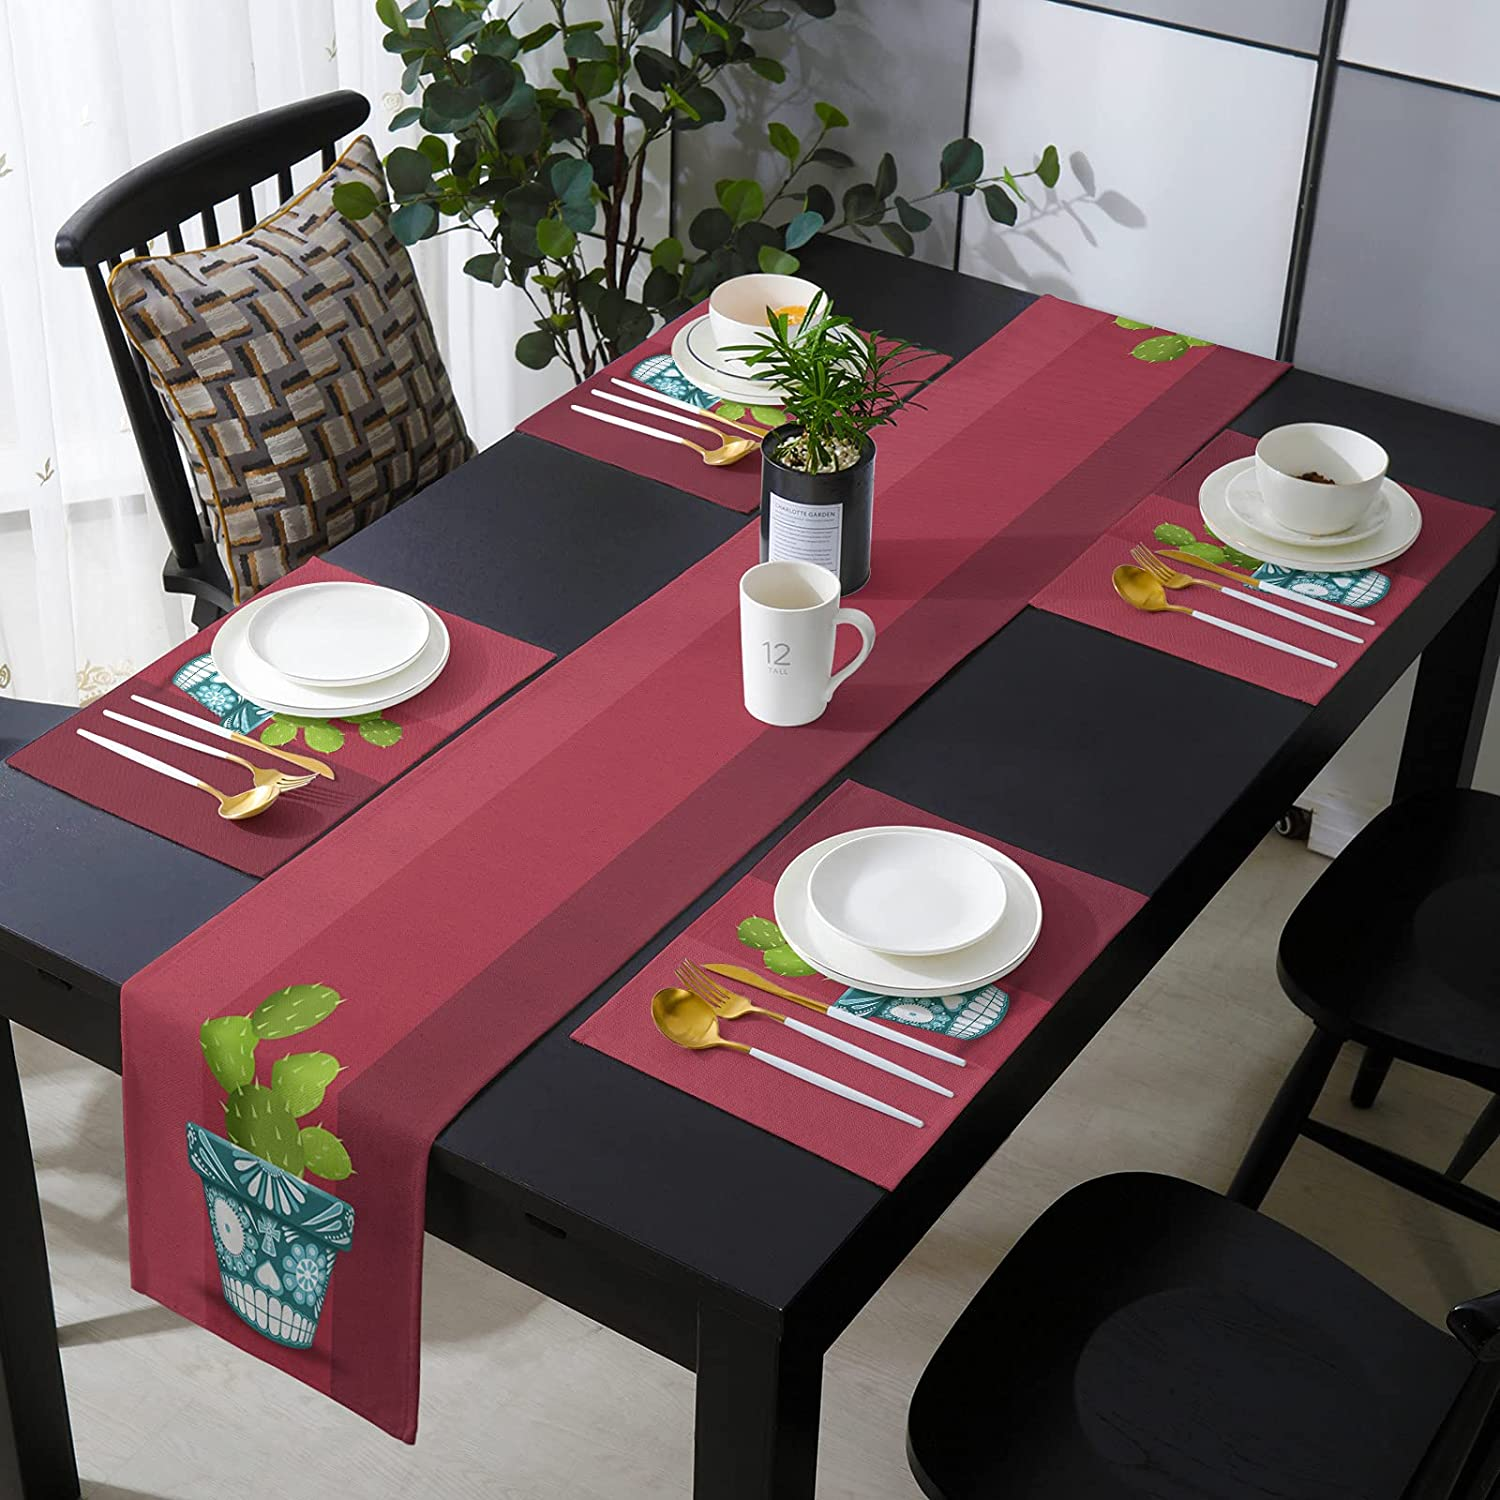 COLORSUM Burlap Table Runner Placemats Set Mexican of De Day The Baltimore Mall Factory outlet